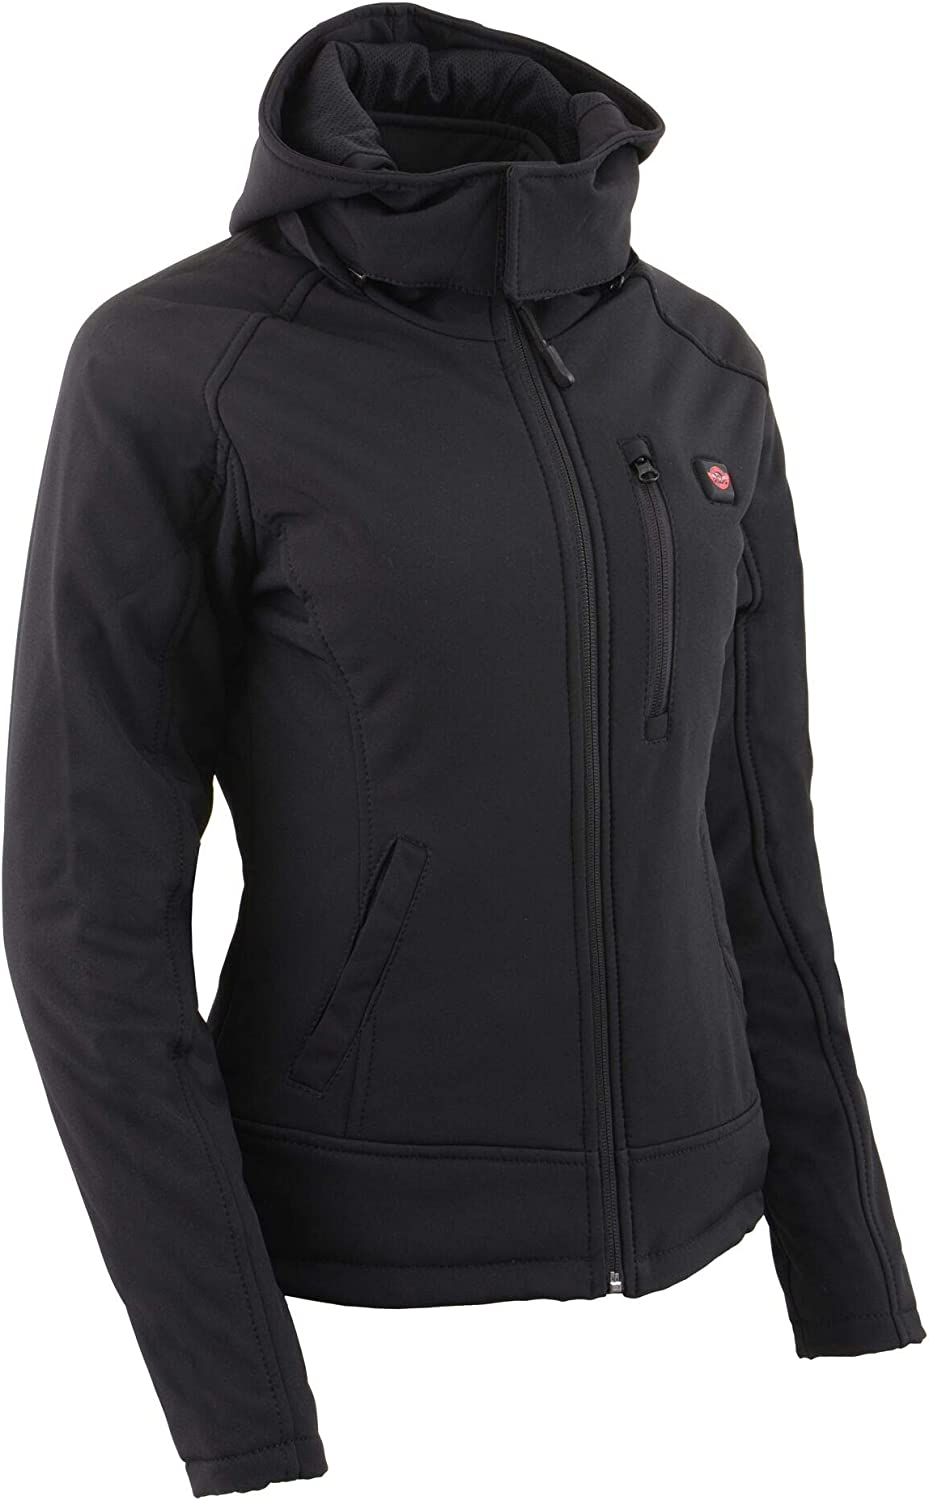 Battery Pack Included-BLACK-XS-2767 Milwaukee Leather-Womens Heated Textile Soft Shell hoodie Jacket